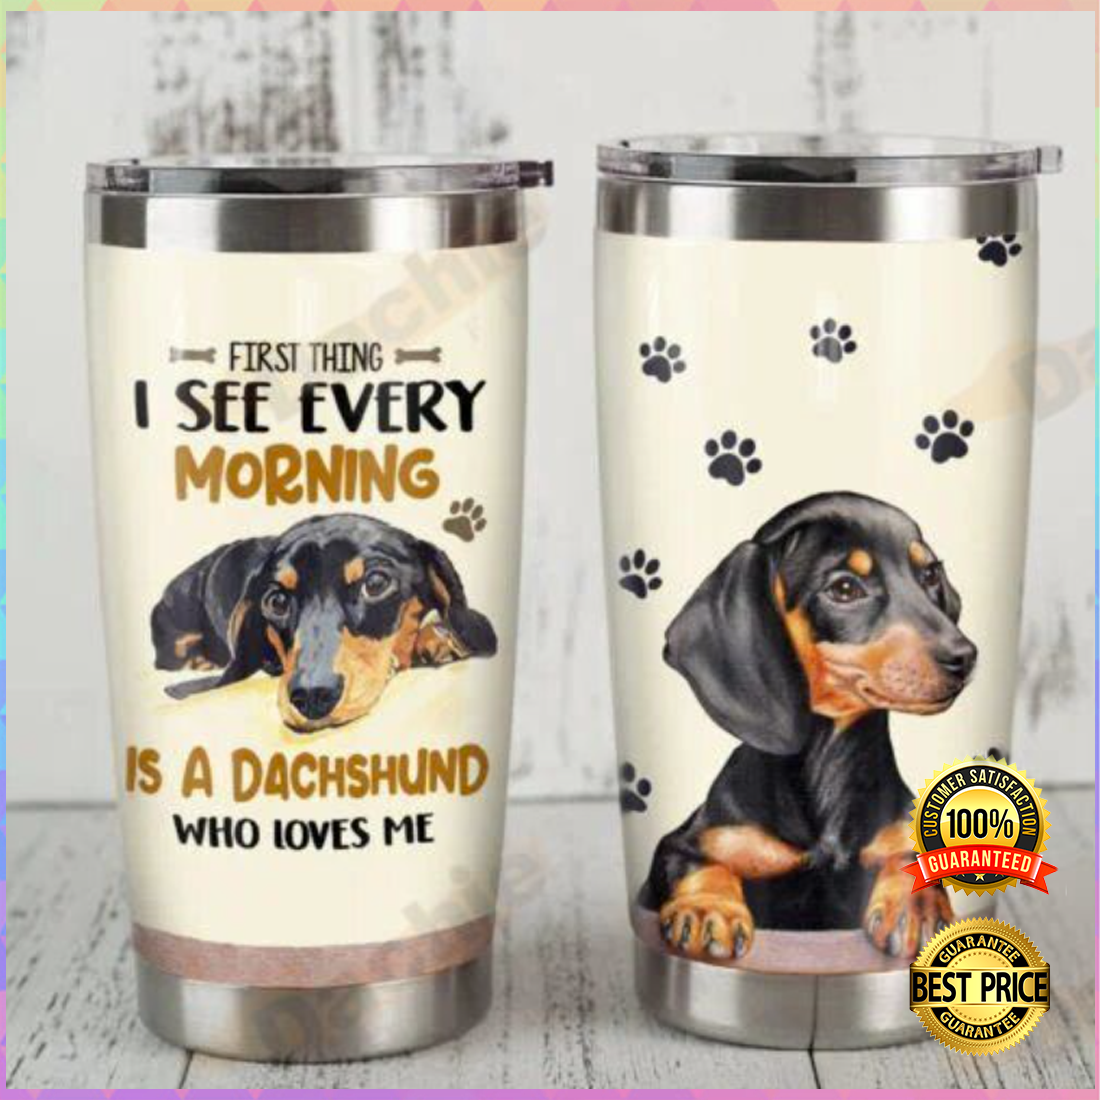 First thing i see every morning is a dachshund who loves me tumbler 4